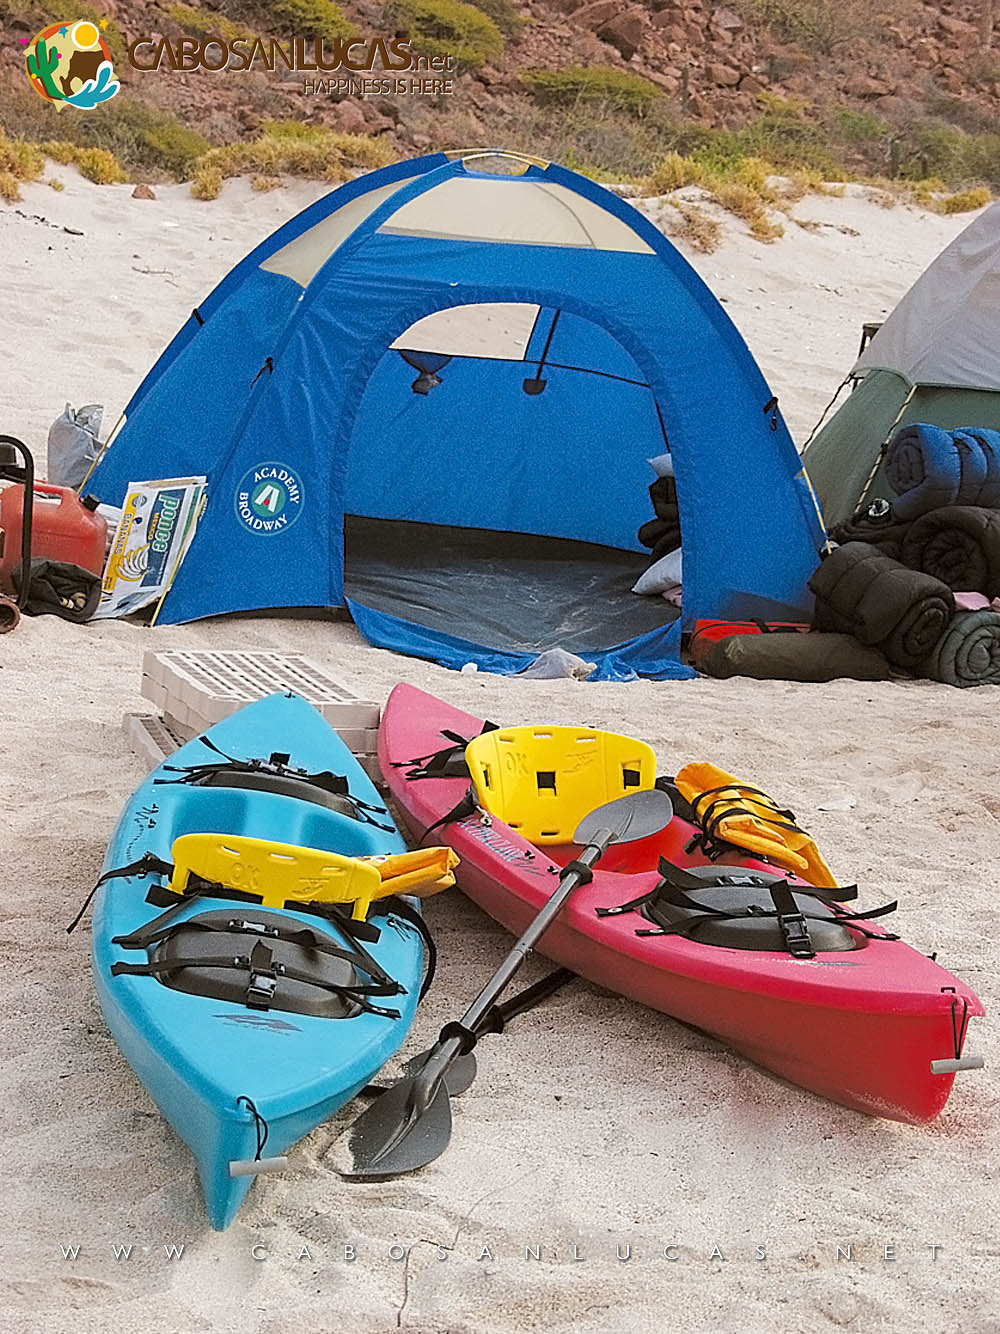 Camping and kayaking